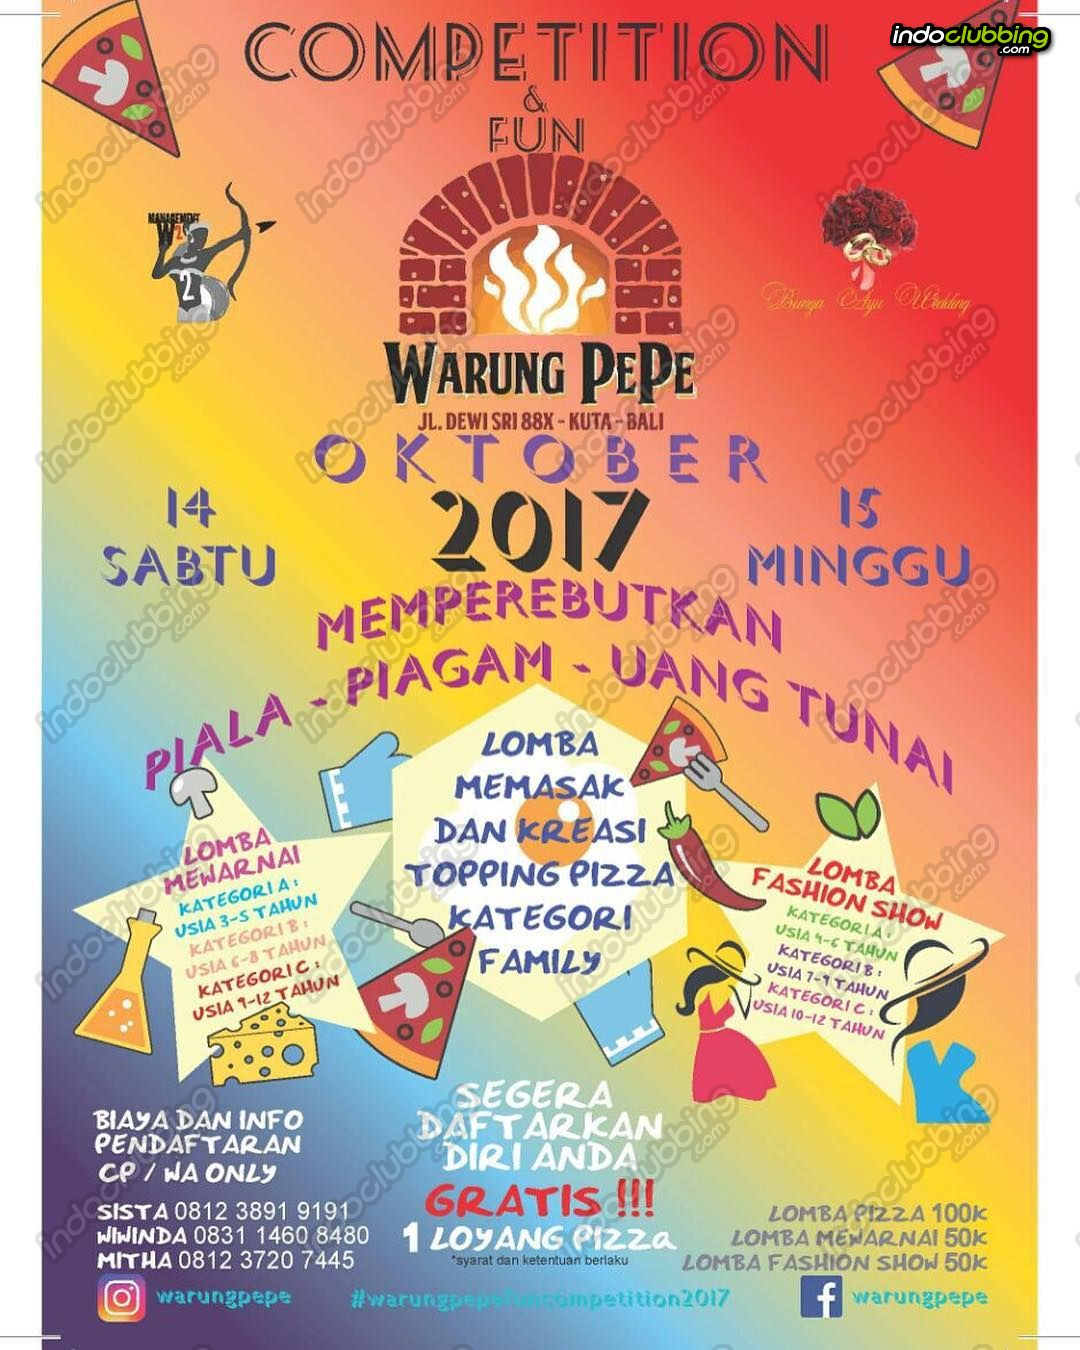 Event Petition & Fun Warung PePe Bali Sun 15 Oct